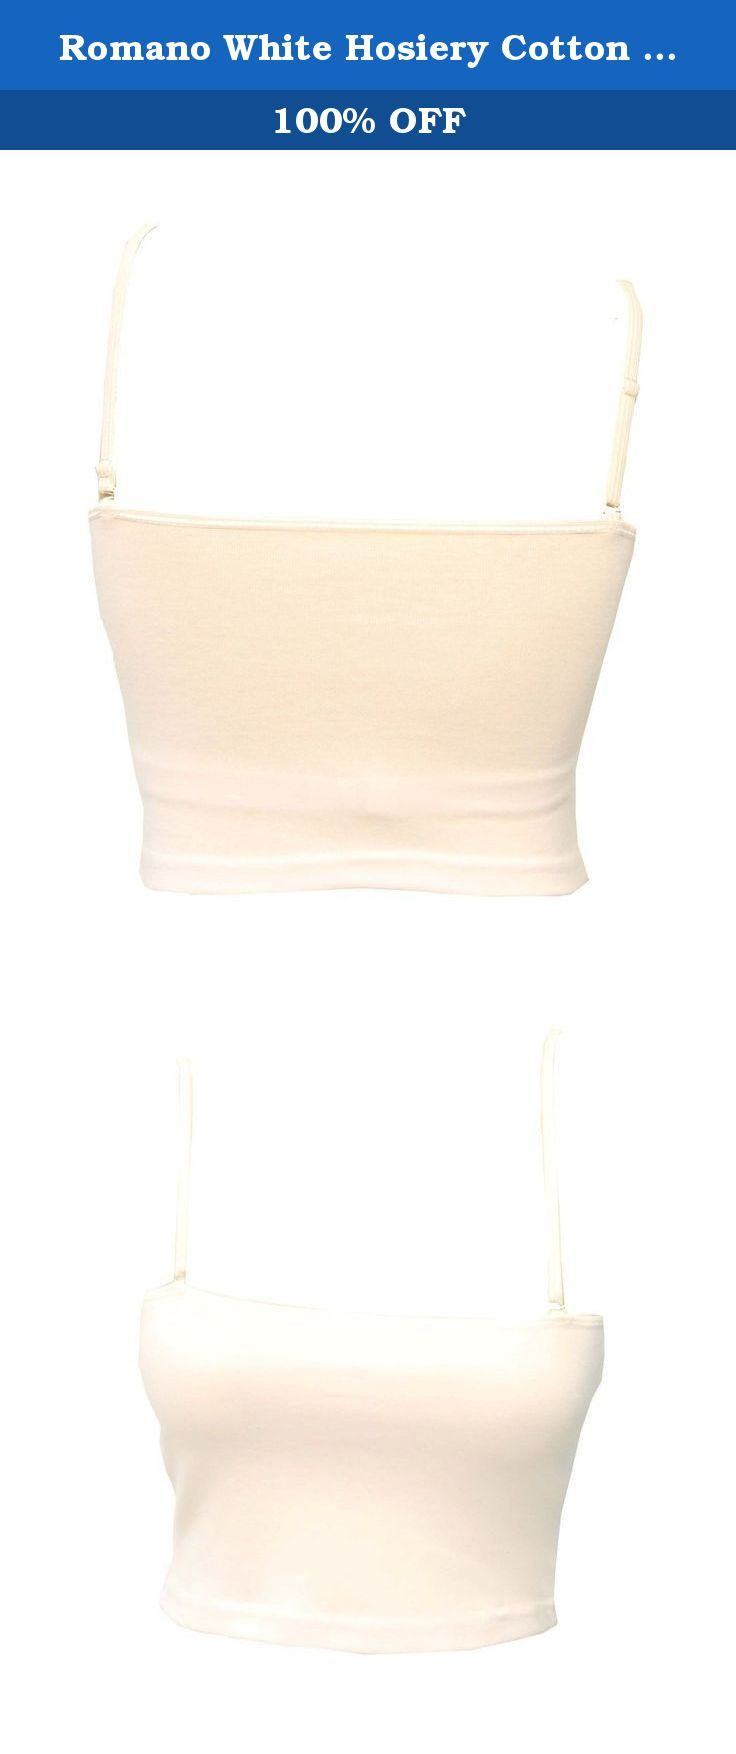 Romano White Hosiery Cotton Camisole with Detachable Straps & Removable Pads. Fall in love with the soft texture of the fabric.Your skin will love the feel of this Jegging as it is fashioned using the material that is famous for comfort - cotton.